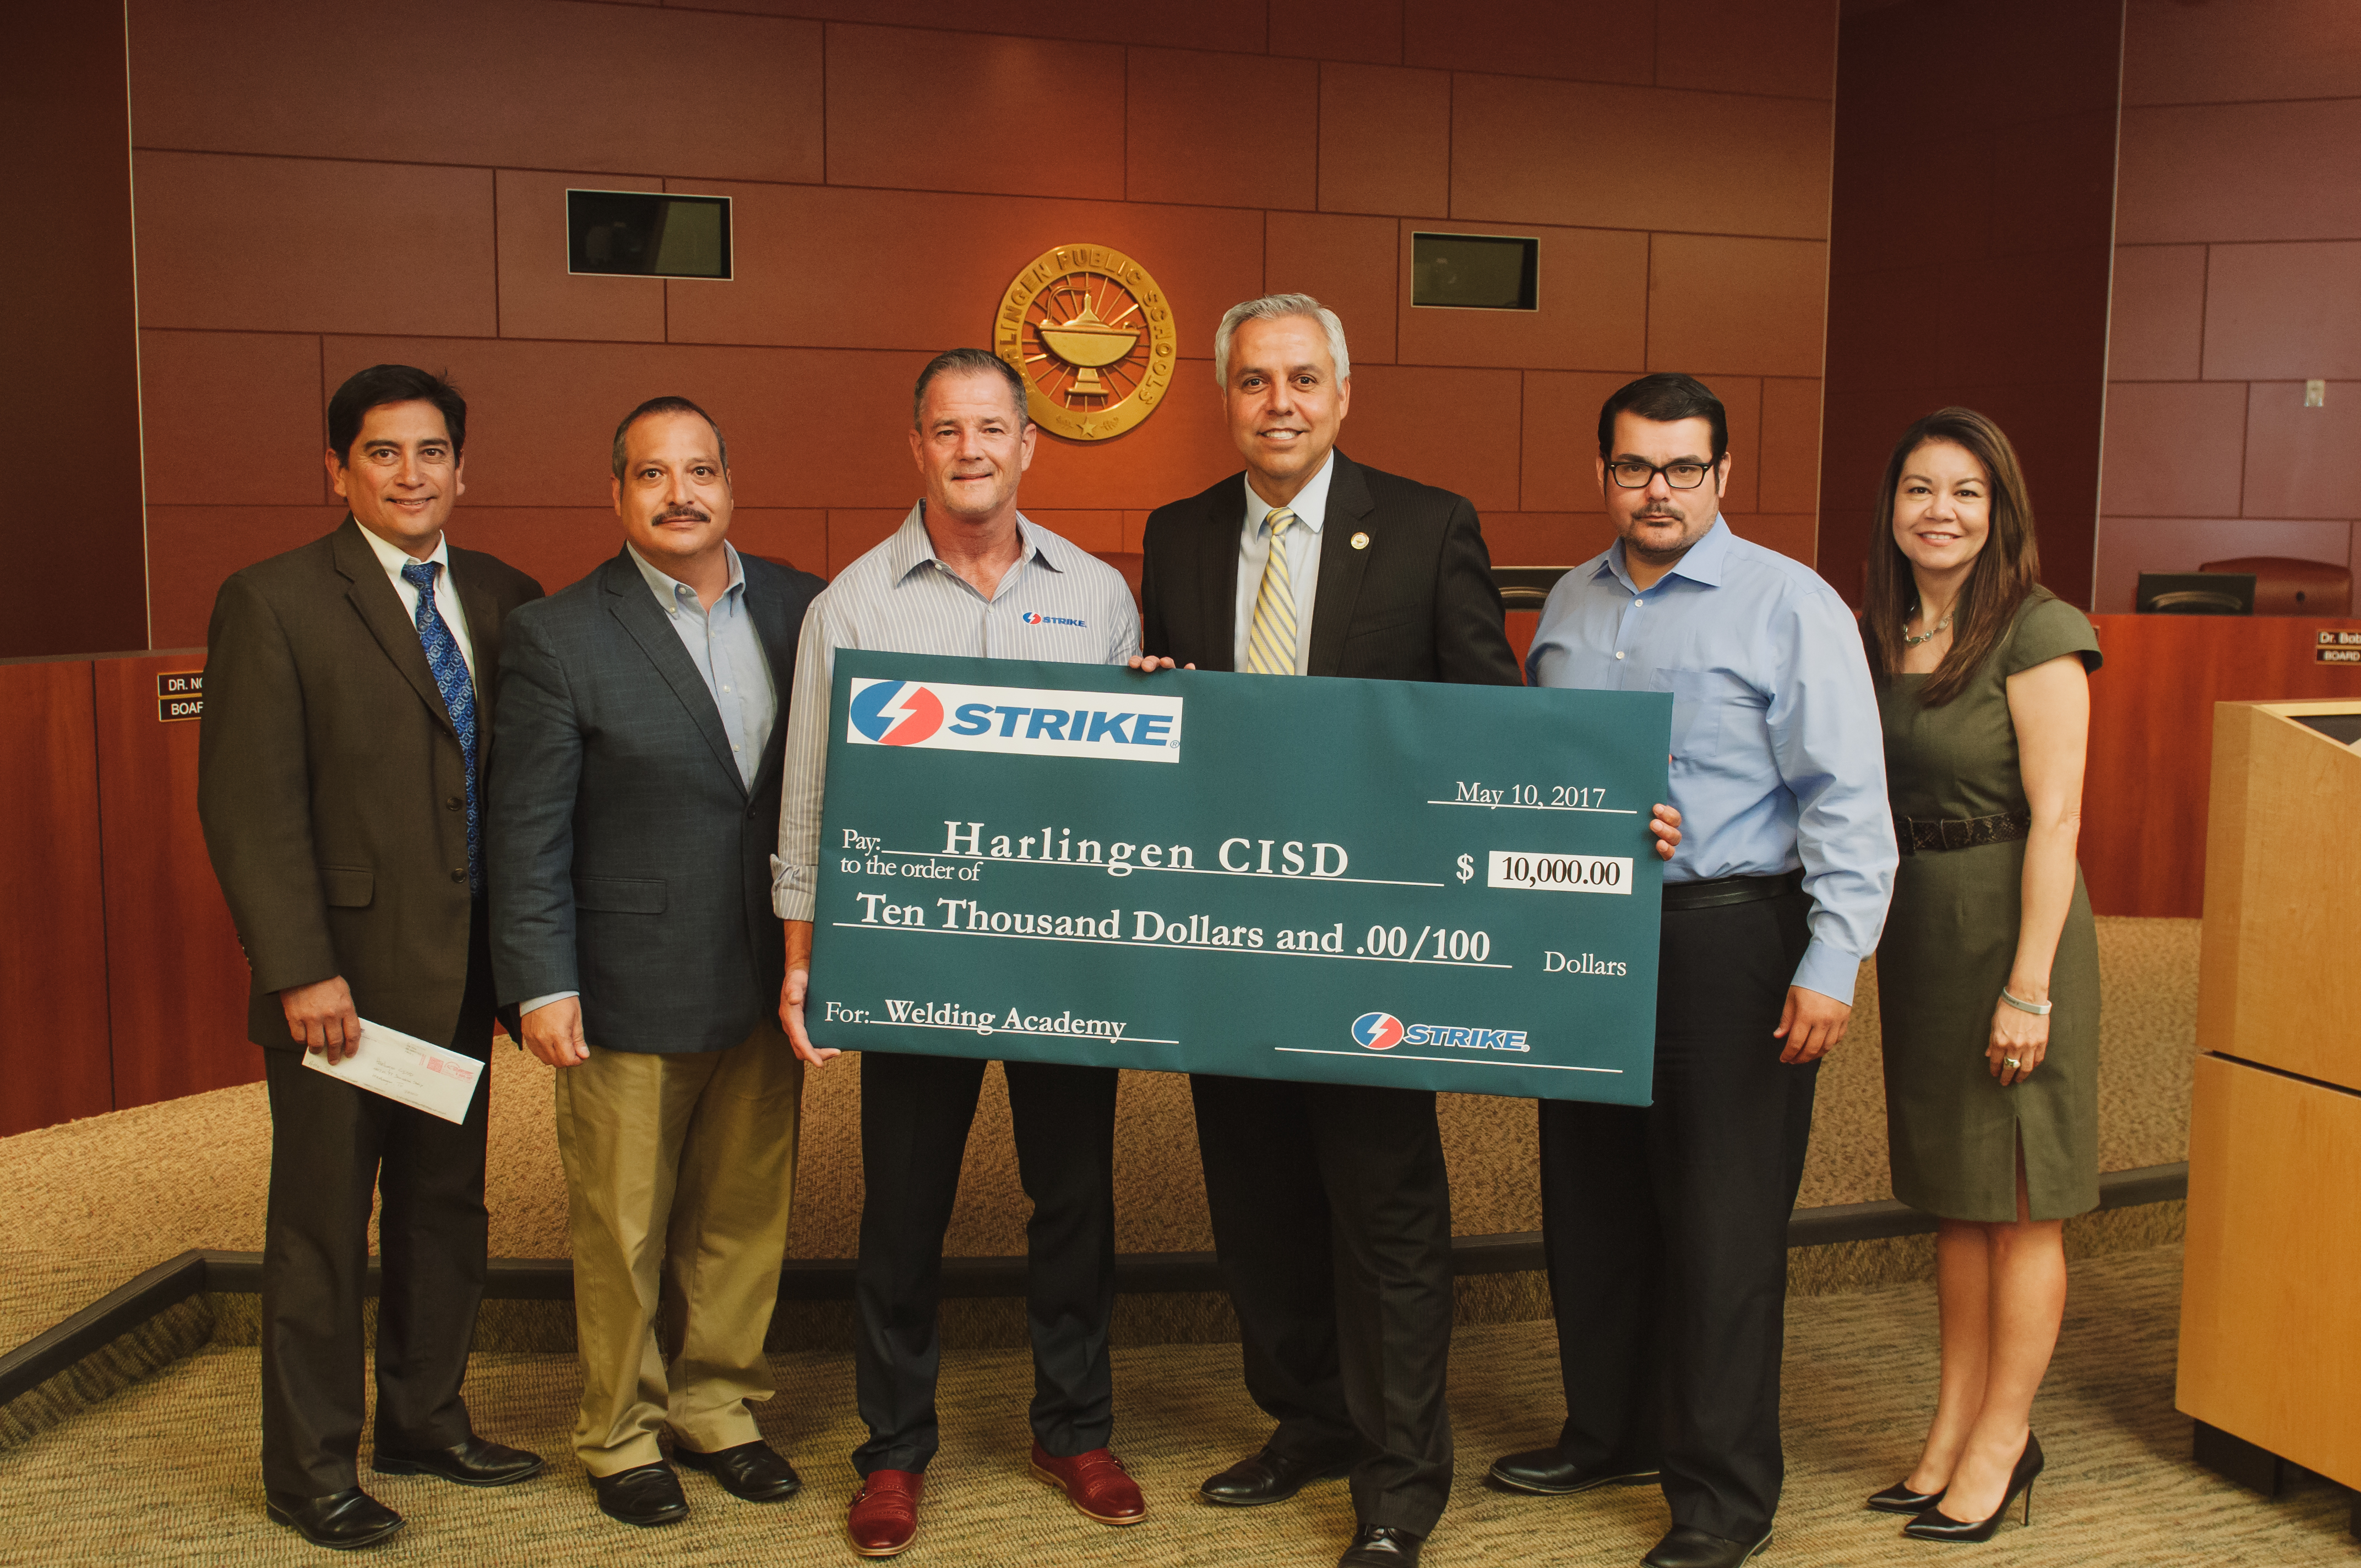 Strike donates $10,000 towards HCISD welding program